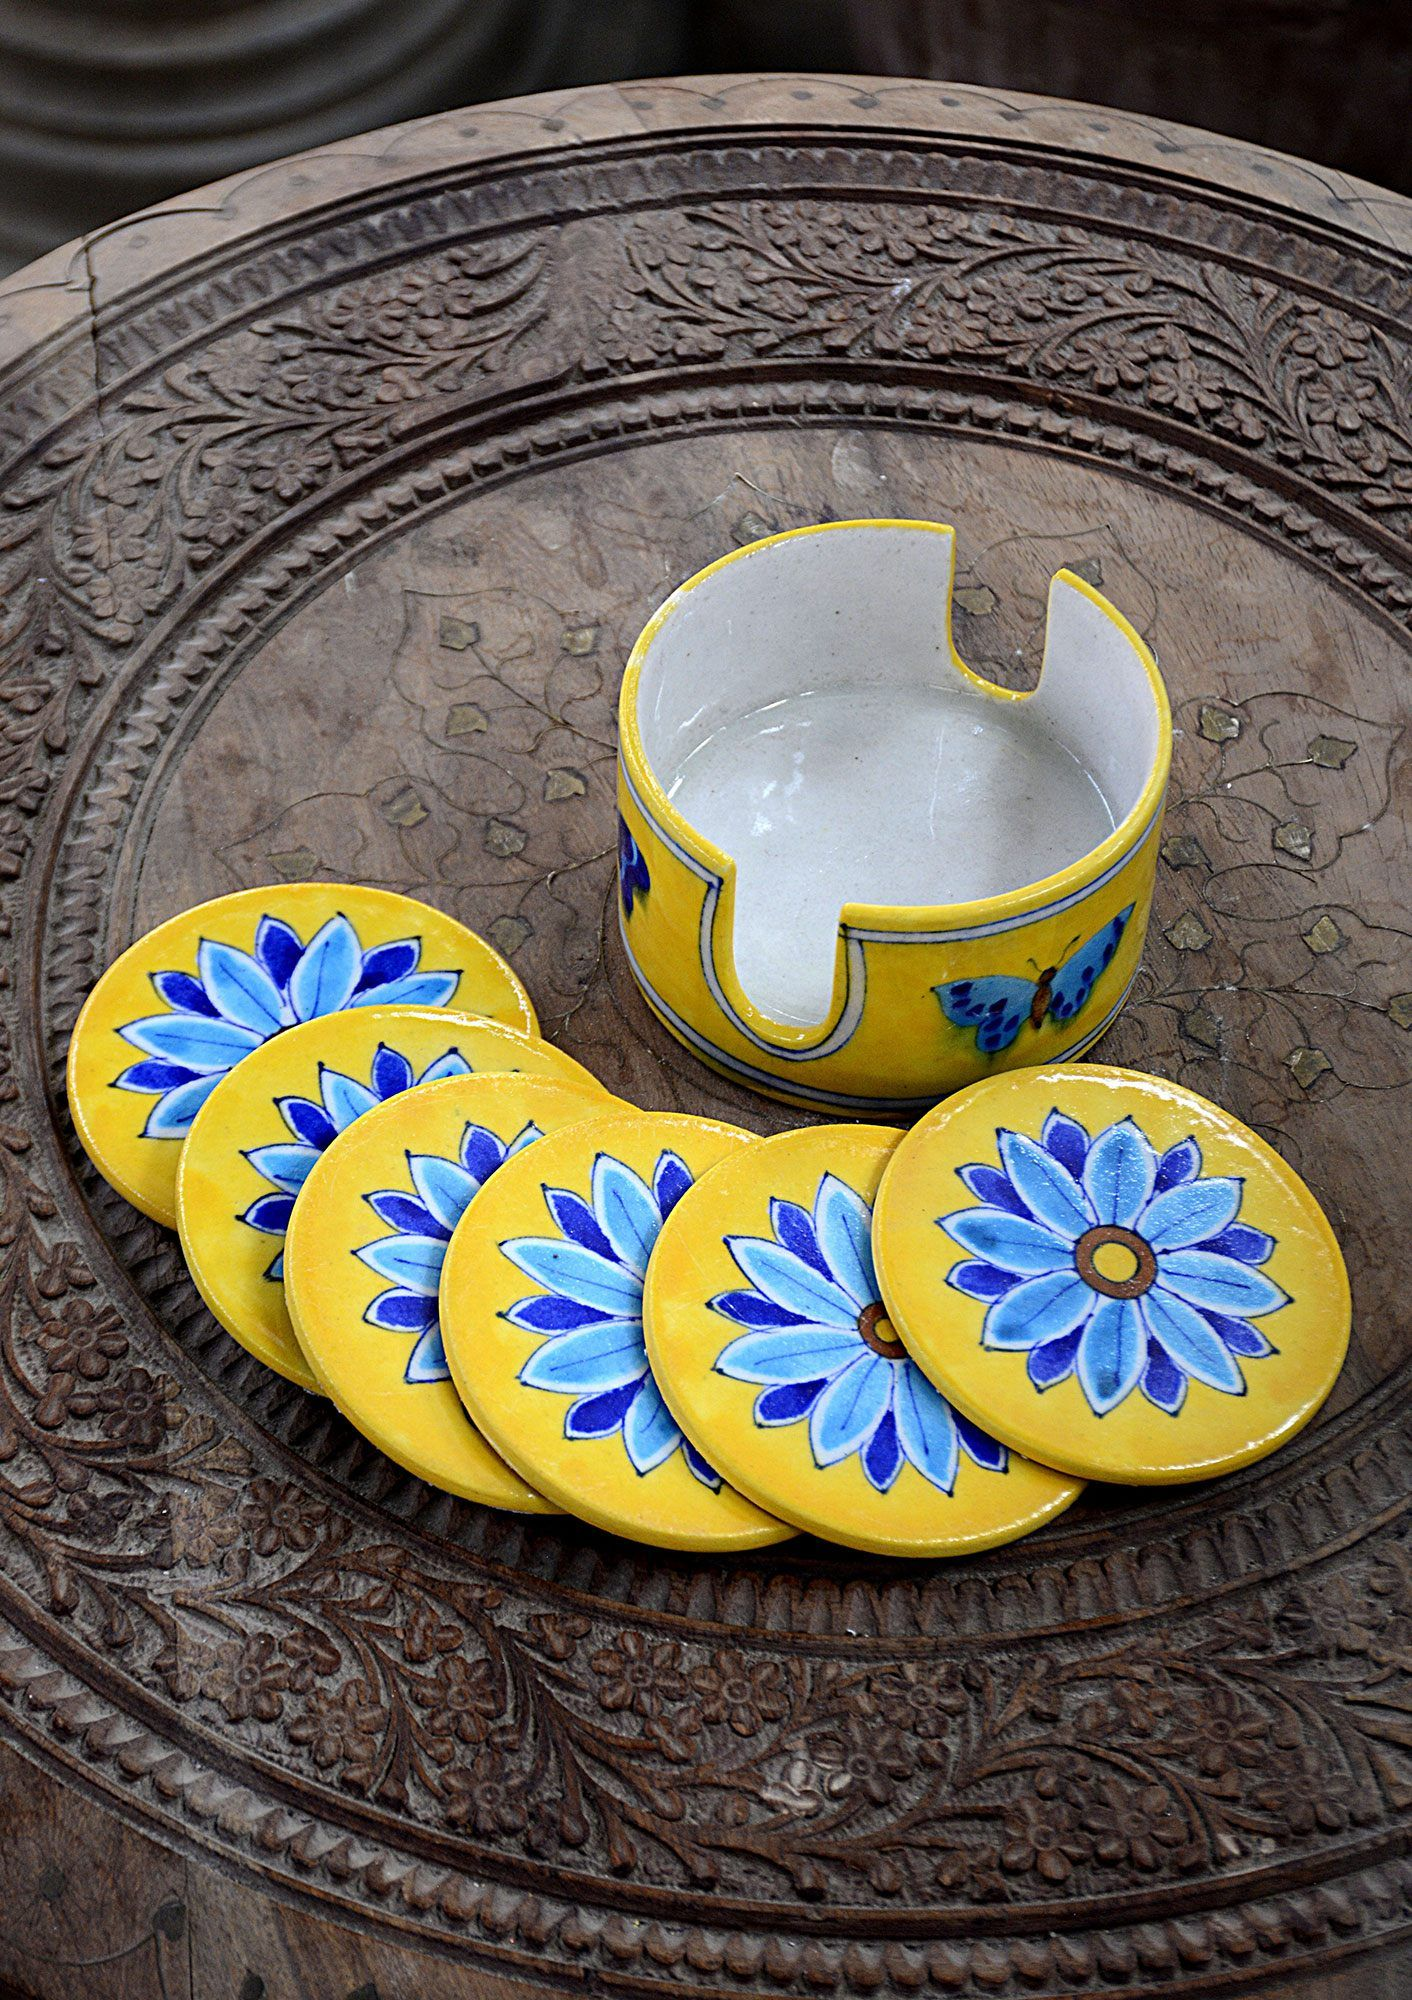 Hand Crafted Coasters Dinning And Bath Bd This Handcrafted Coaster Set Elegant And Beautiful Enhances The Beauty Of Your House An Handcraft Crafts Hand Painted